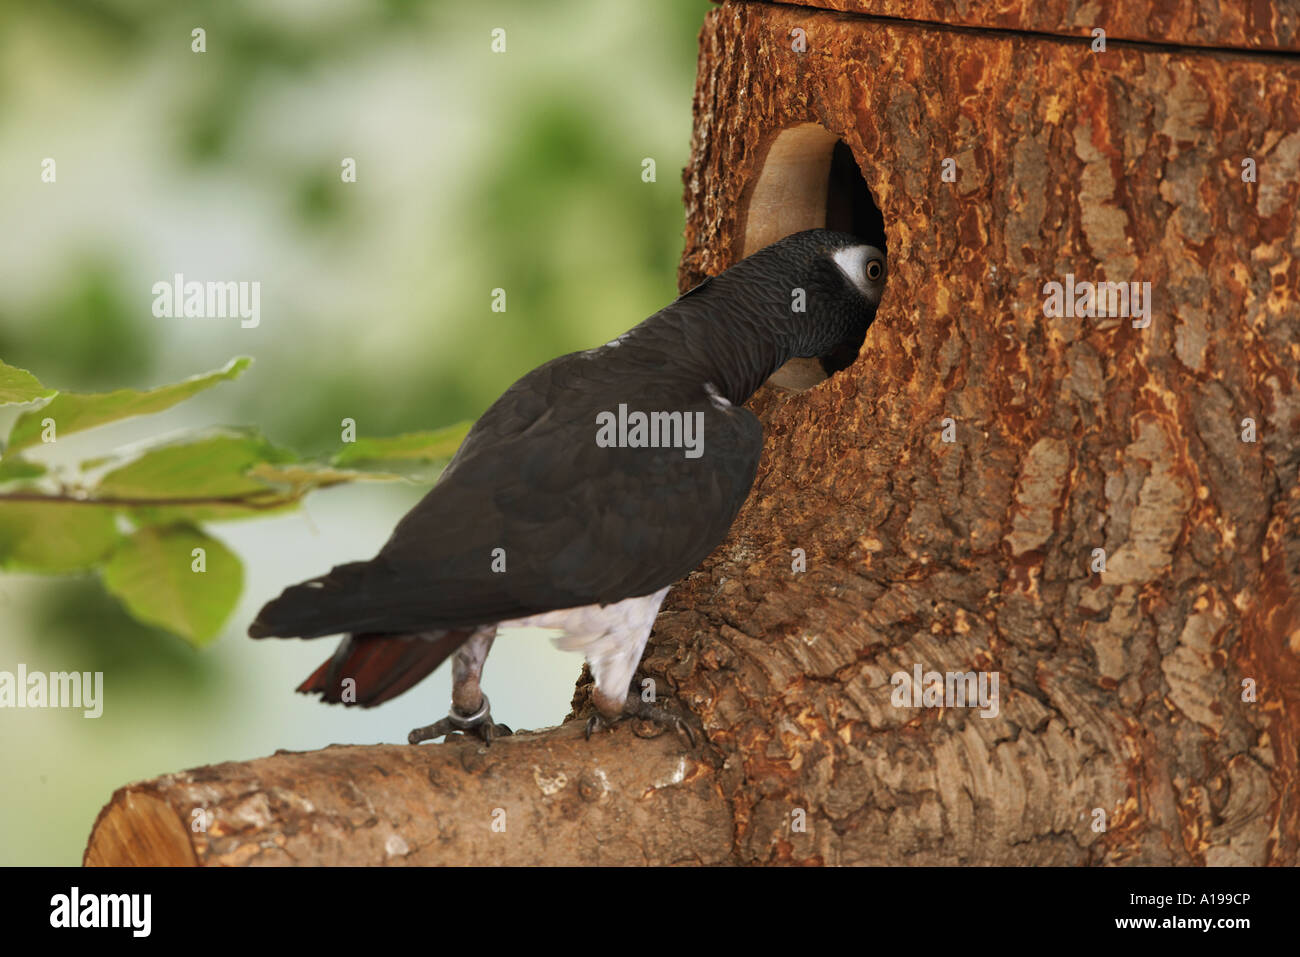 Timneh African Grey parrot looking in hole / Psittacus erithacus timneh - Stock Image